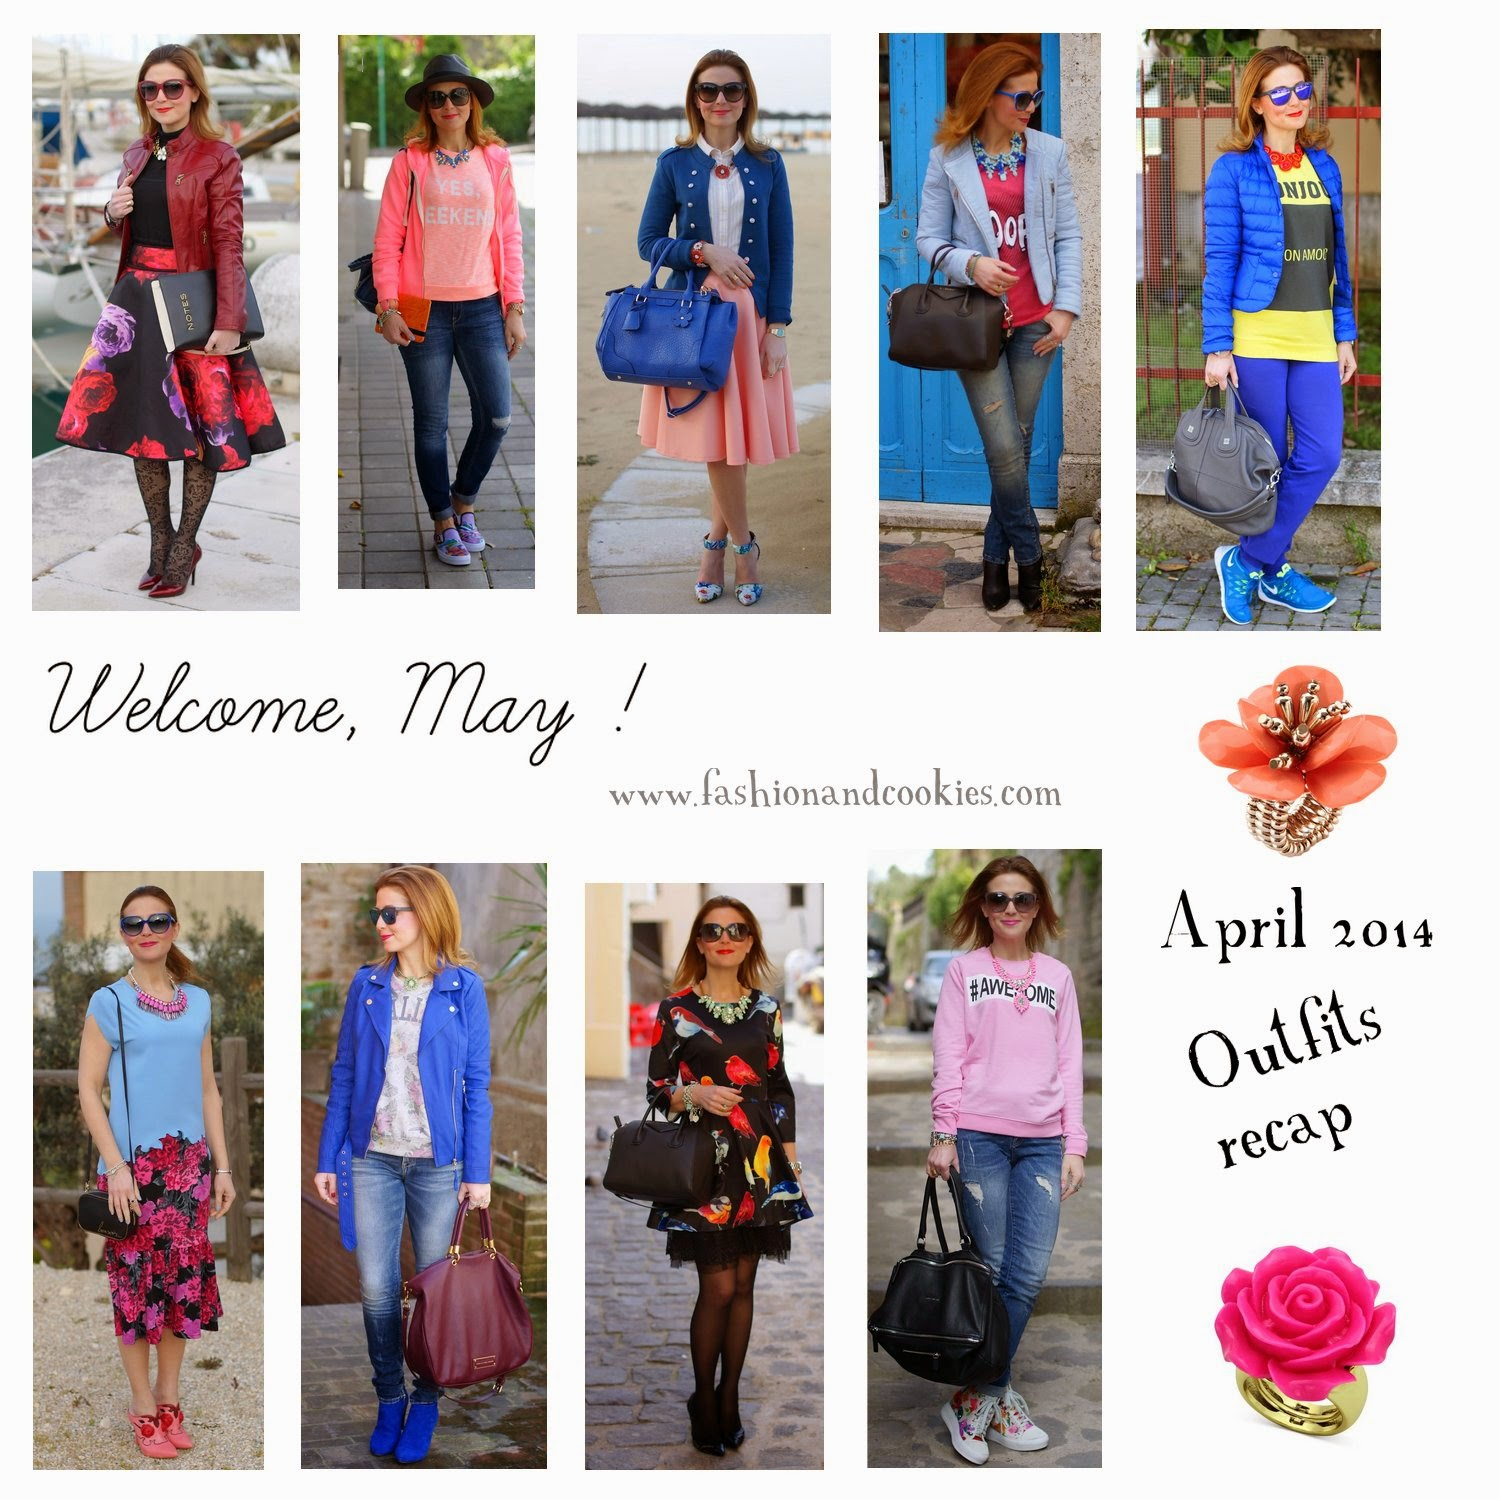 Welcome May, April 2014 outfits recap on Fashion and Cookies, fashion blogger